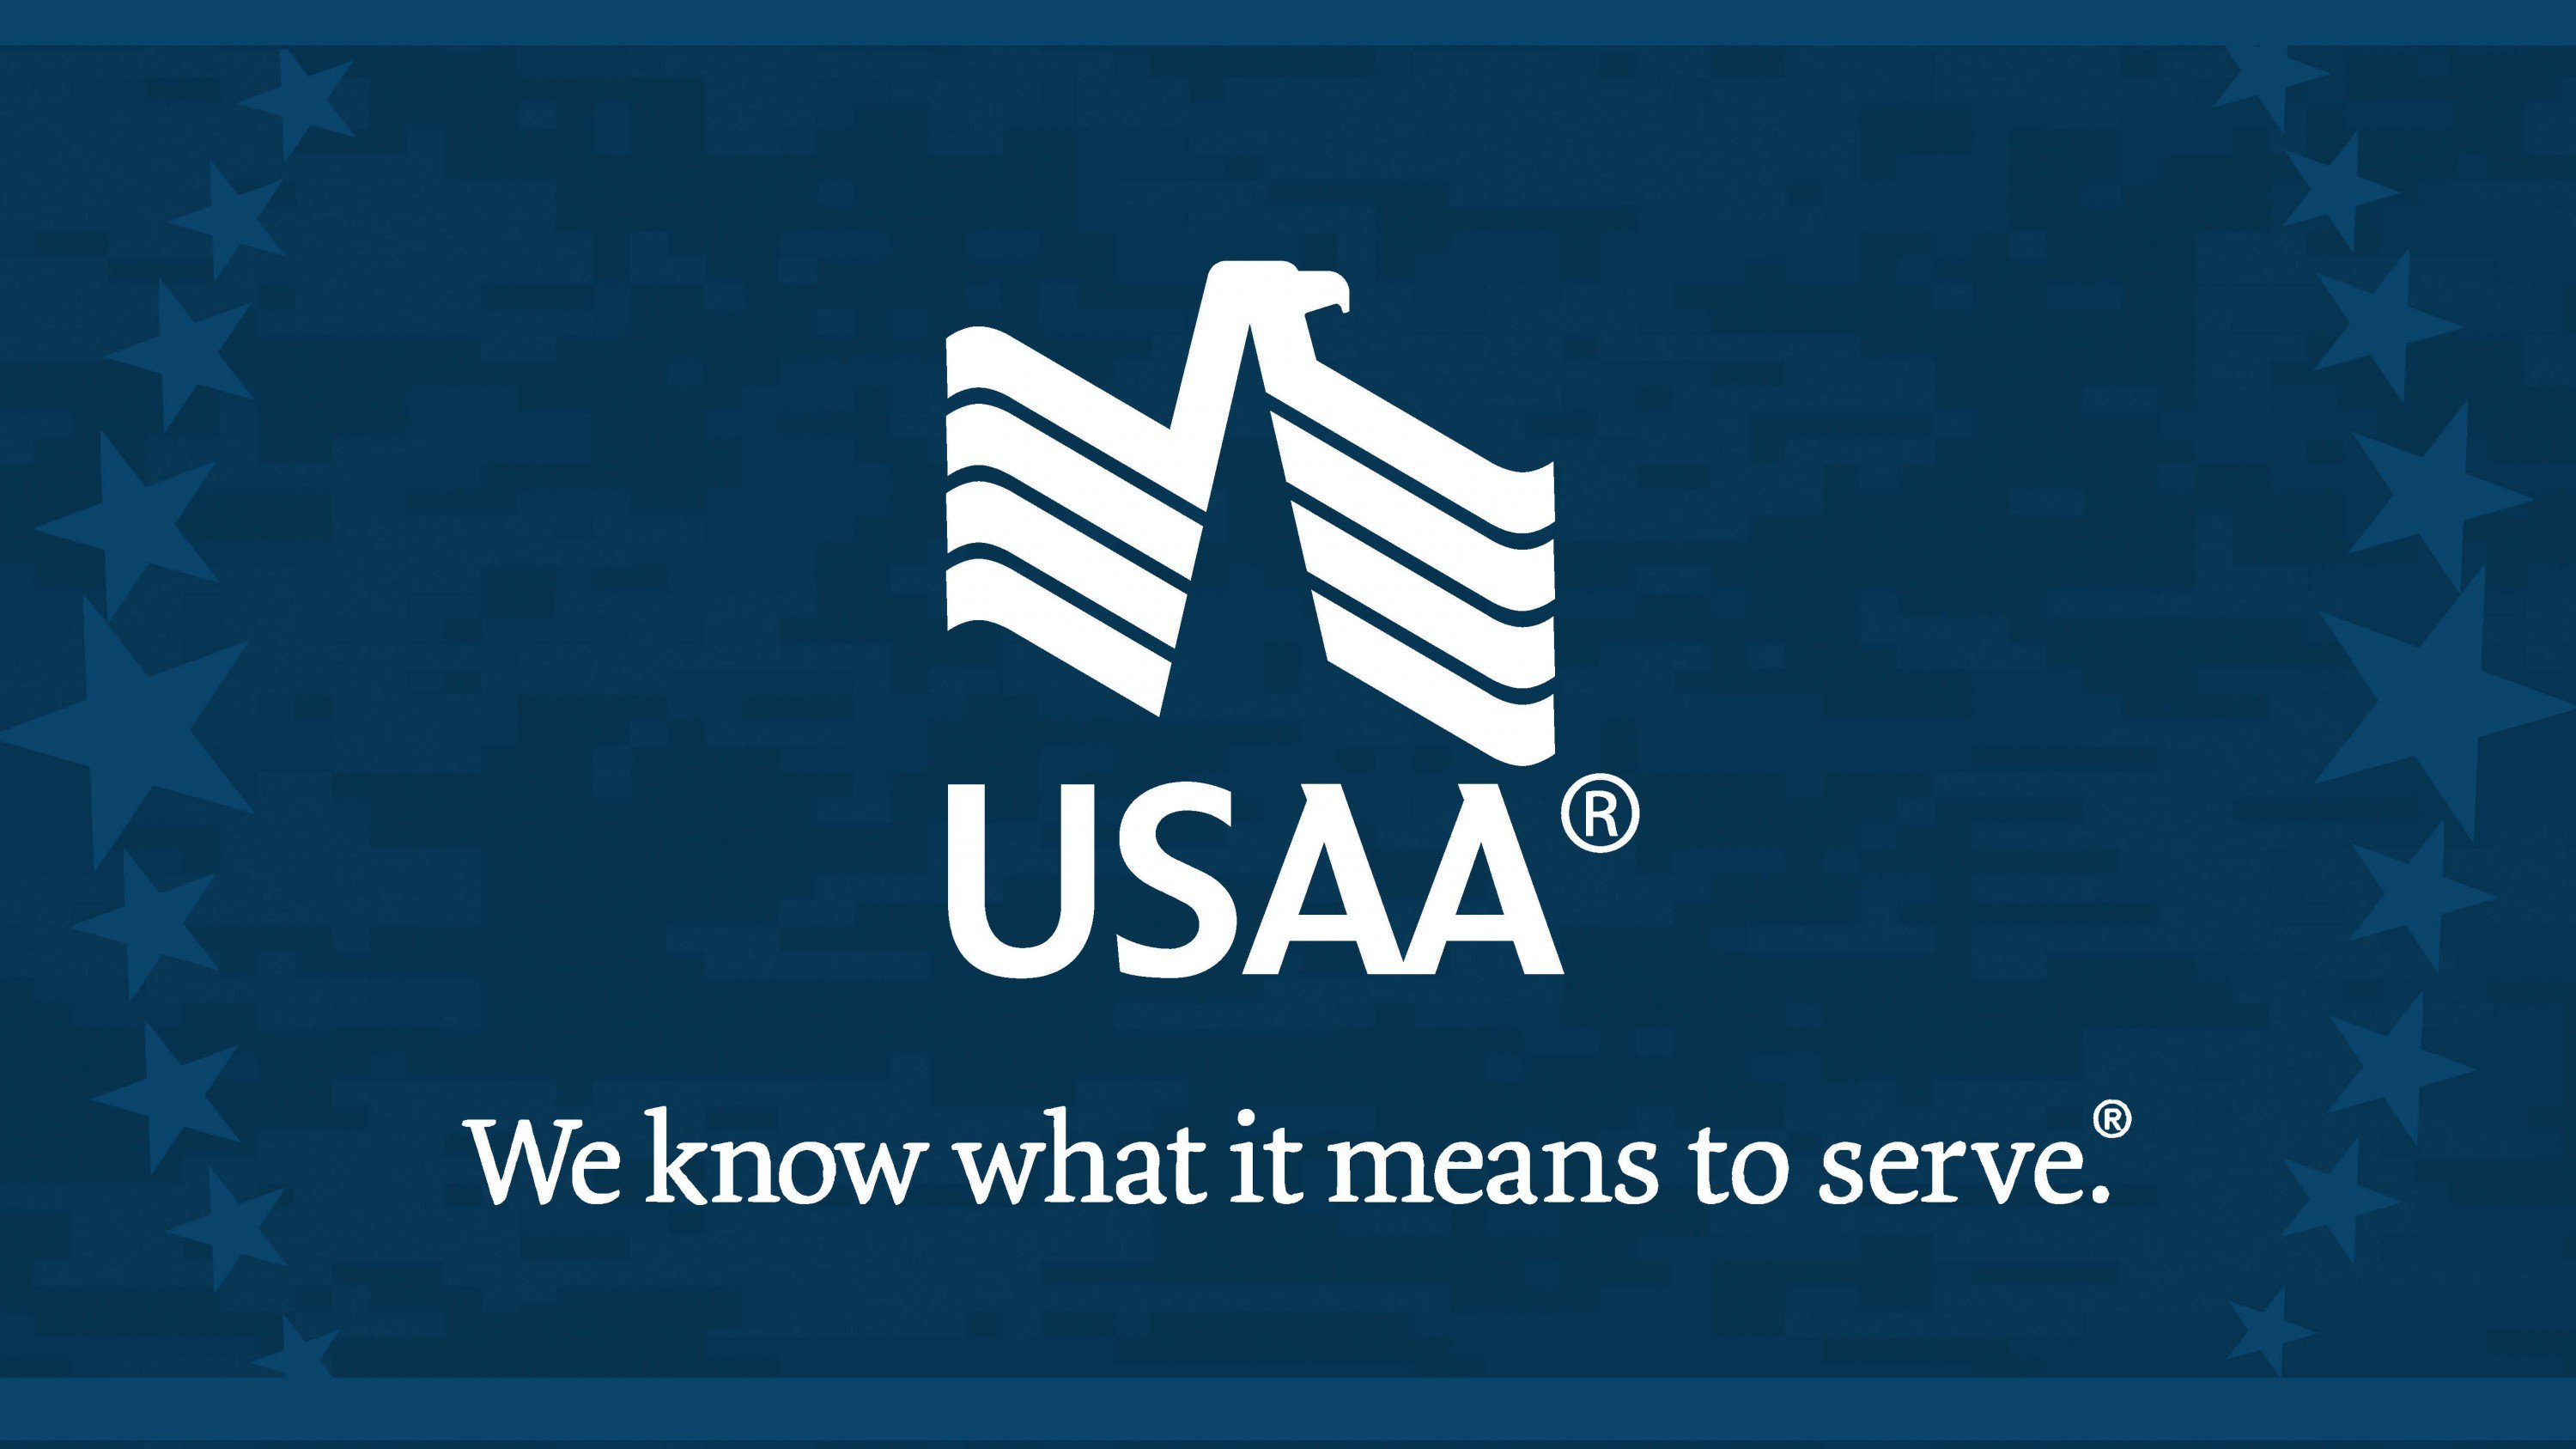 USAA Comes Under Fire After Dropping Its Ads From Fox News' Sean Hannity Show Featured